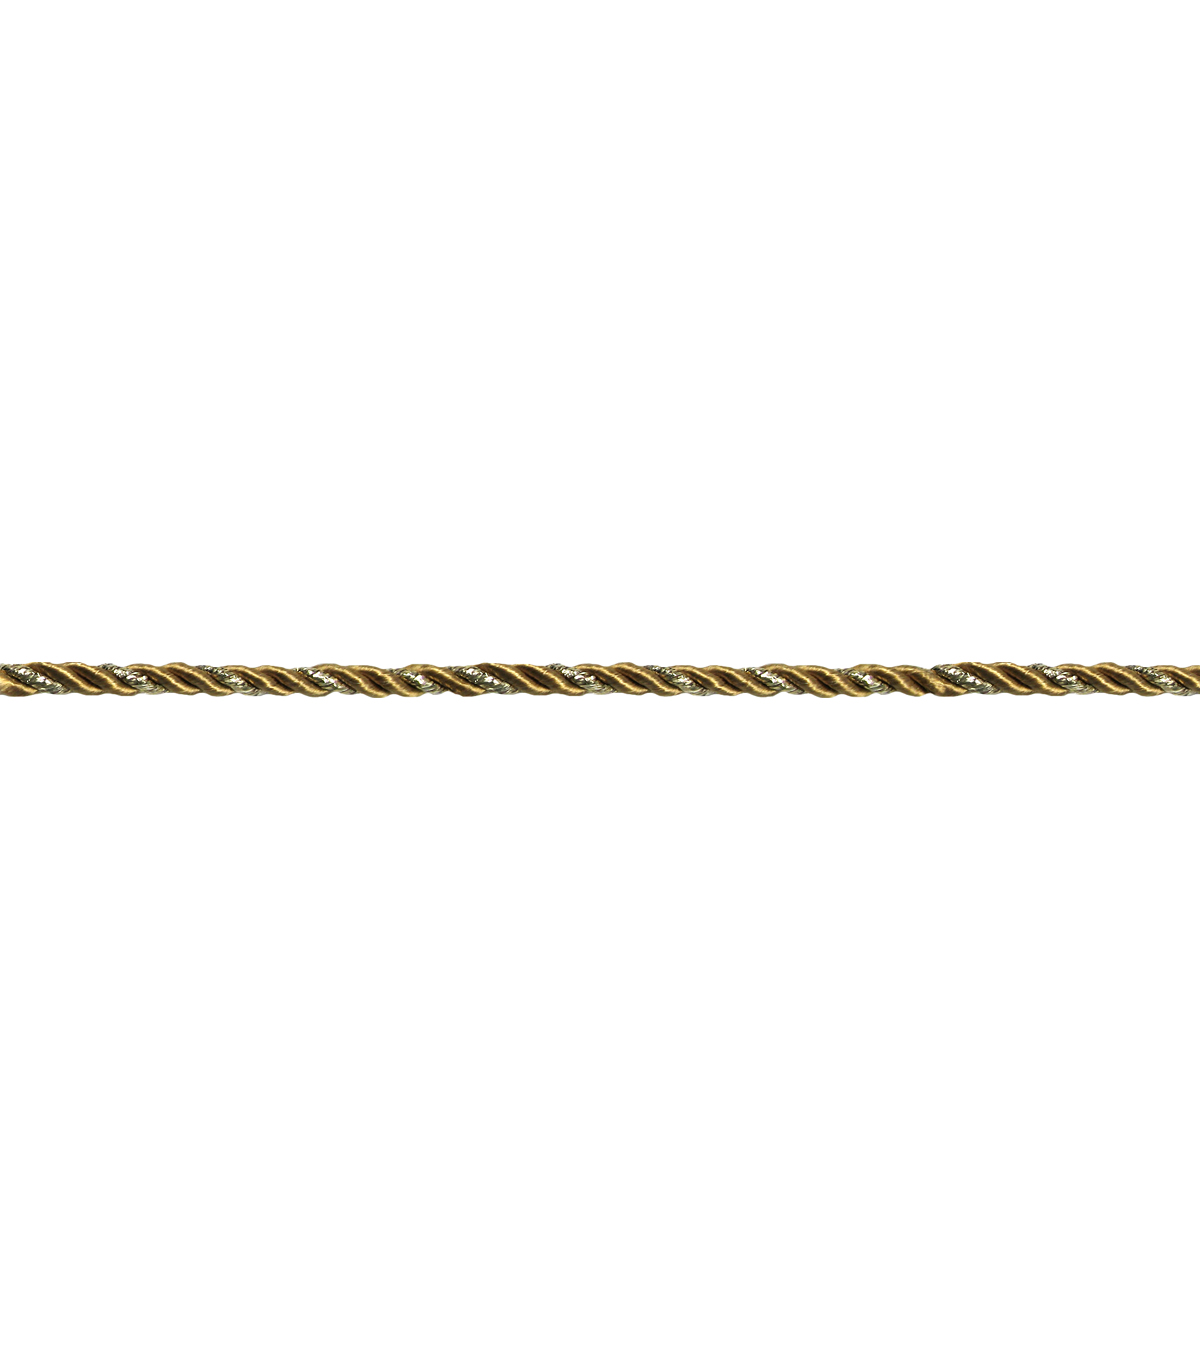 3/16\u0022 Gold Metallic Cord Apparel Trim